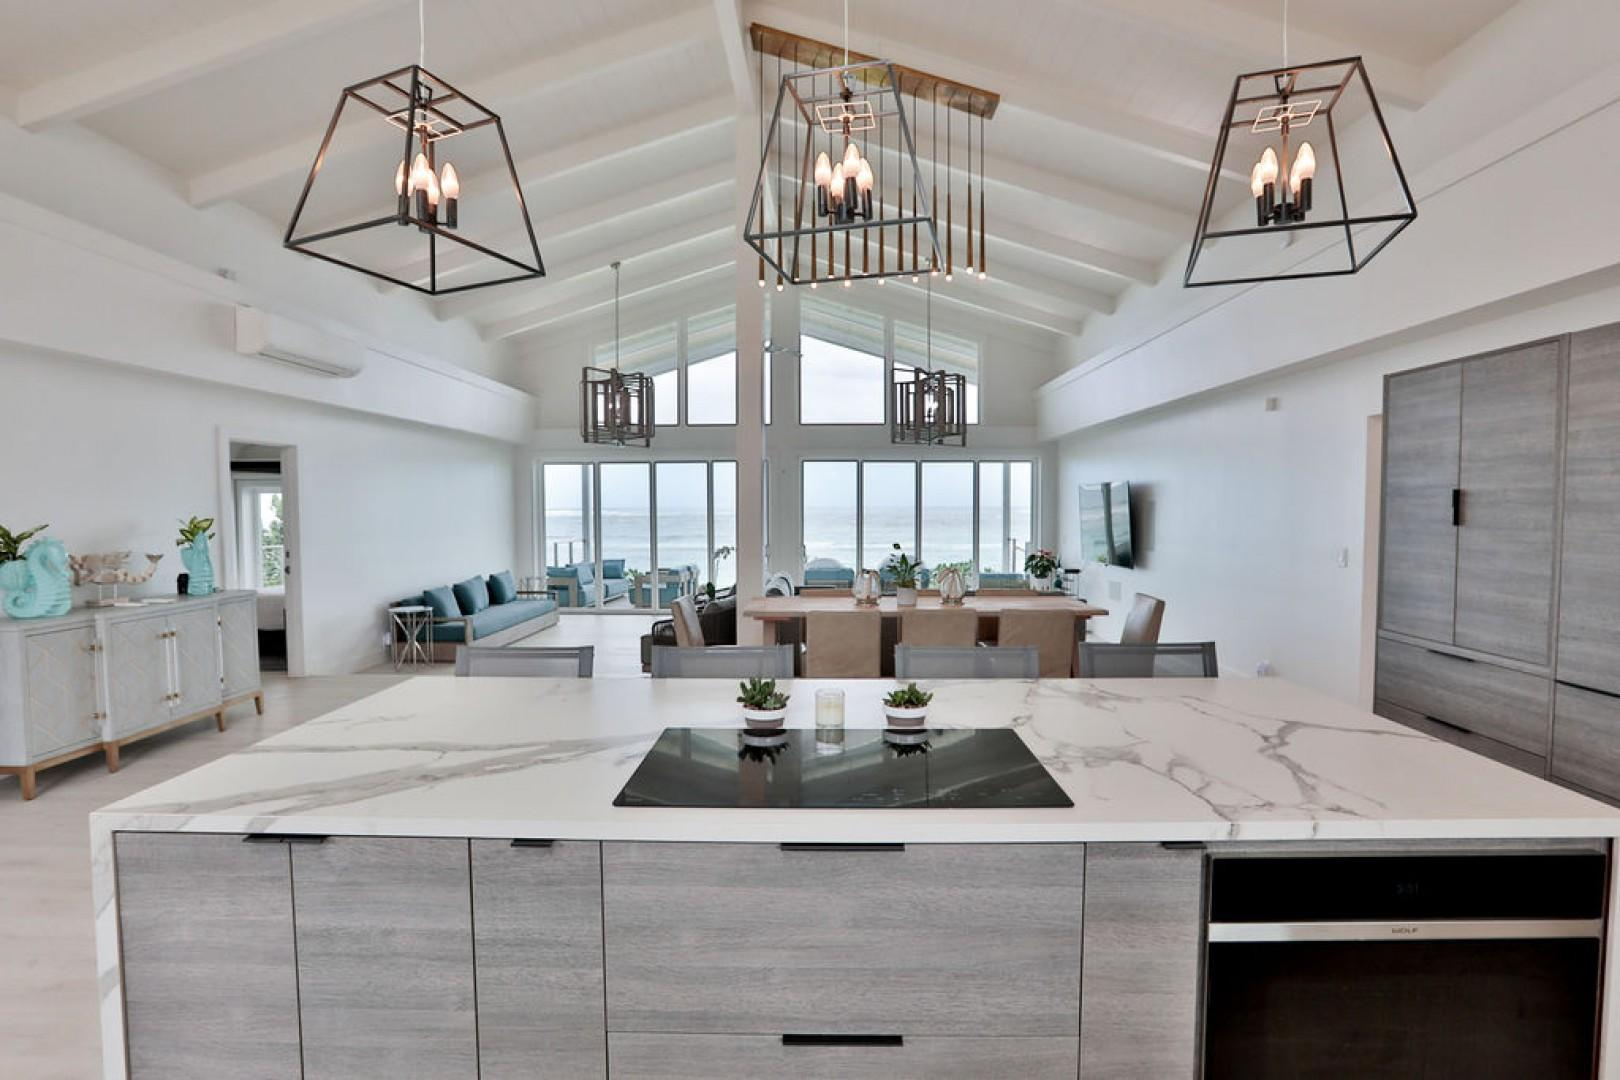 Kitchen views with an open floor plan